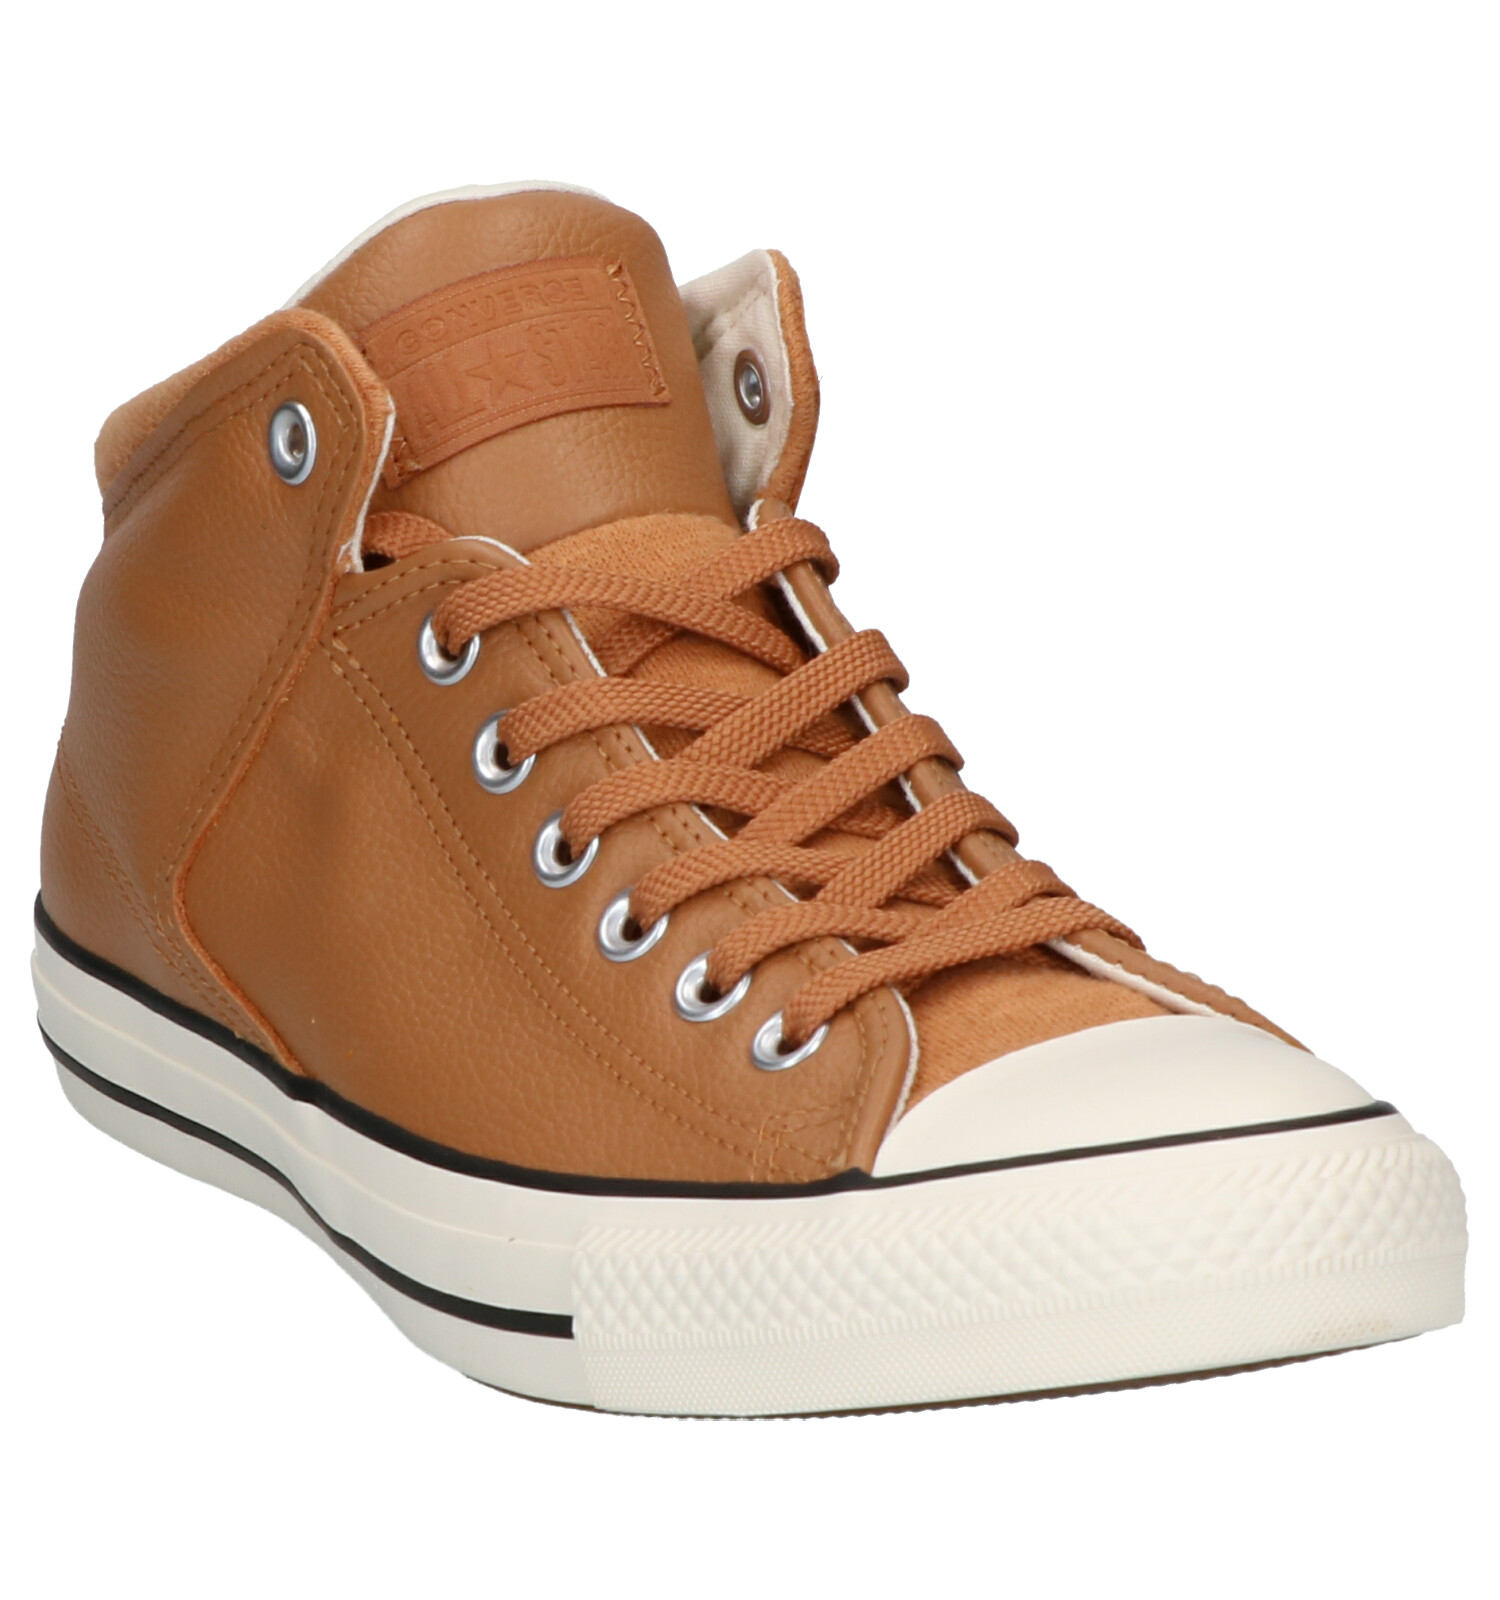 Cognac Converse High As Sneakers Street SVGzMpqU